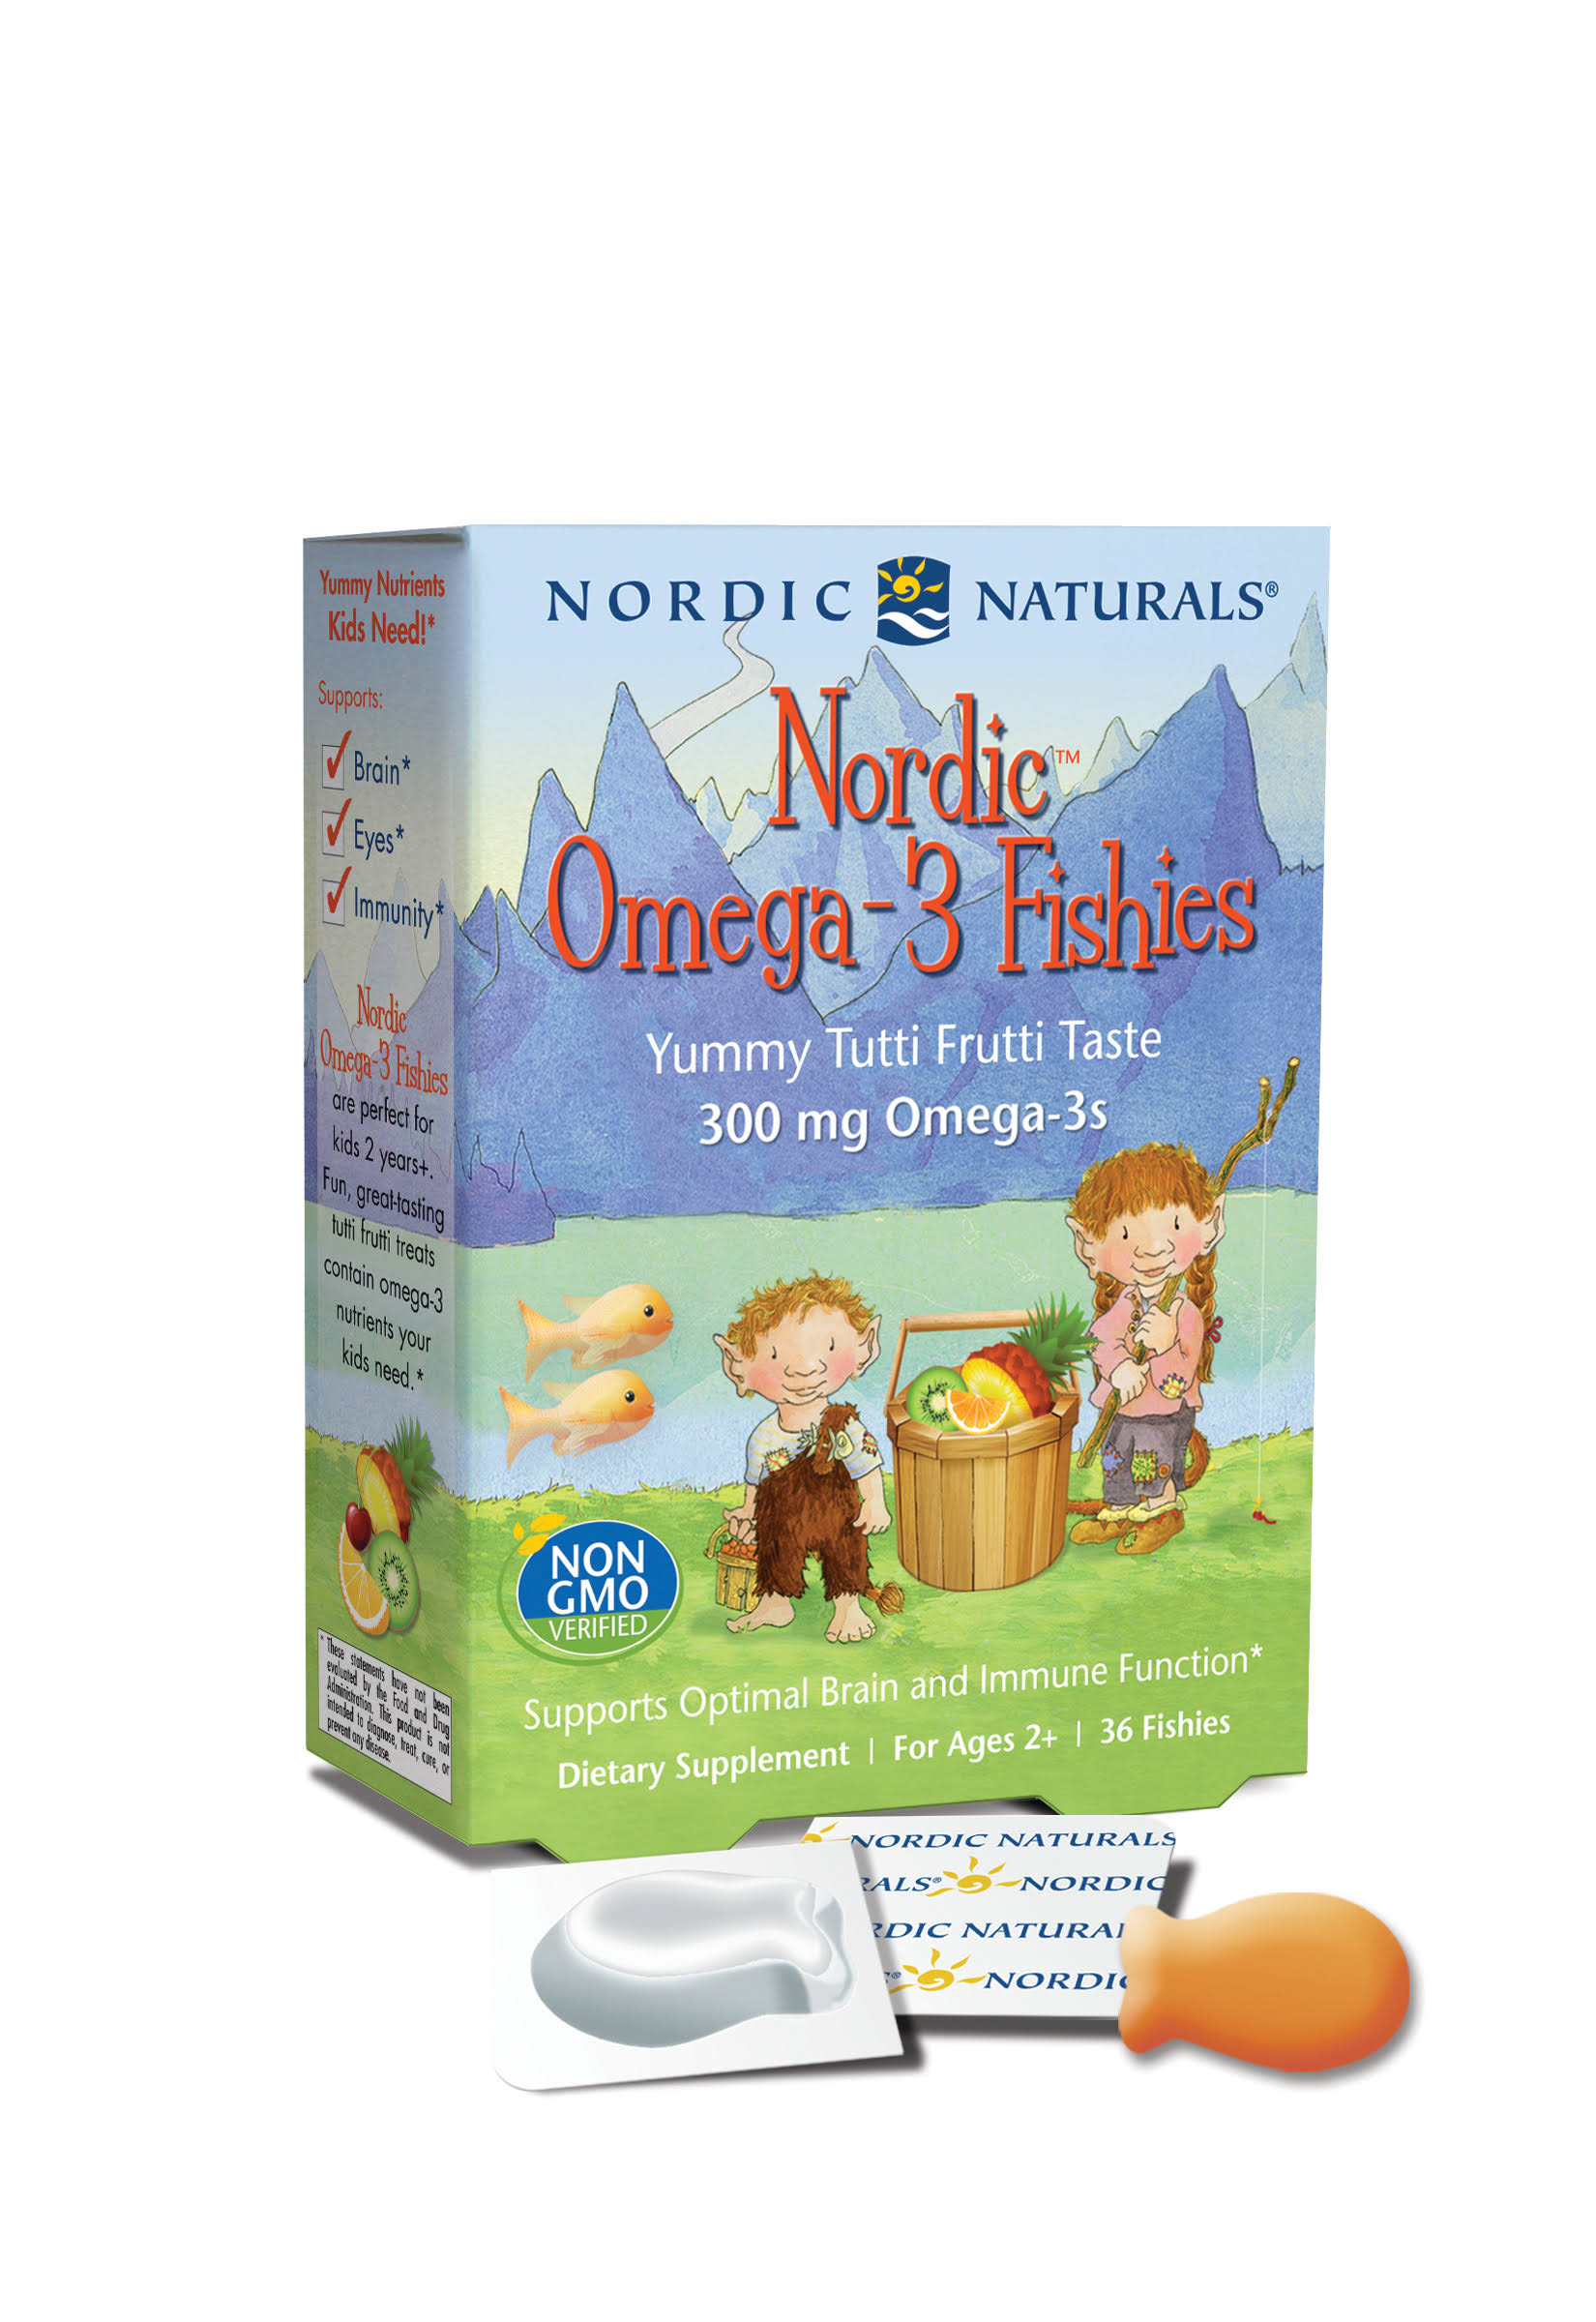 Nordic Naturals Omega-3, 300 mg, Fishies, Yummy Tutti Frutti Taste - 36 fishies